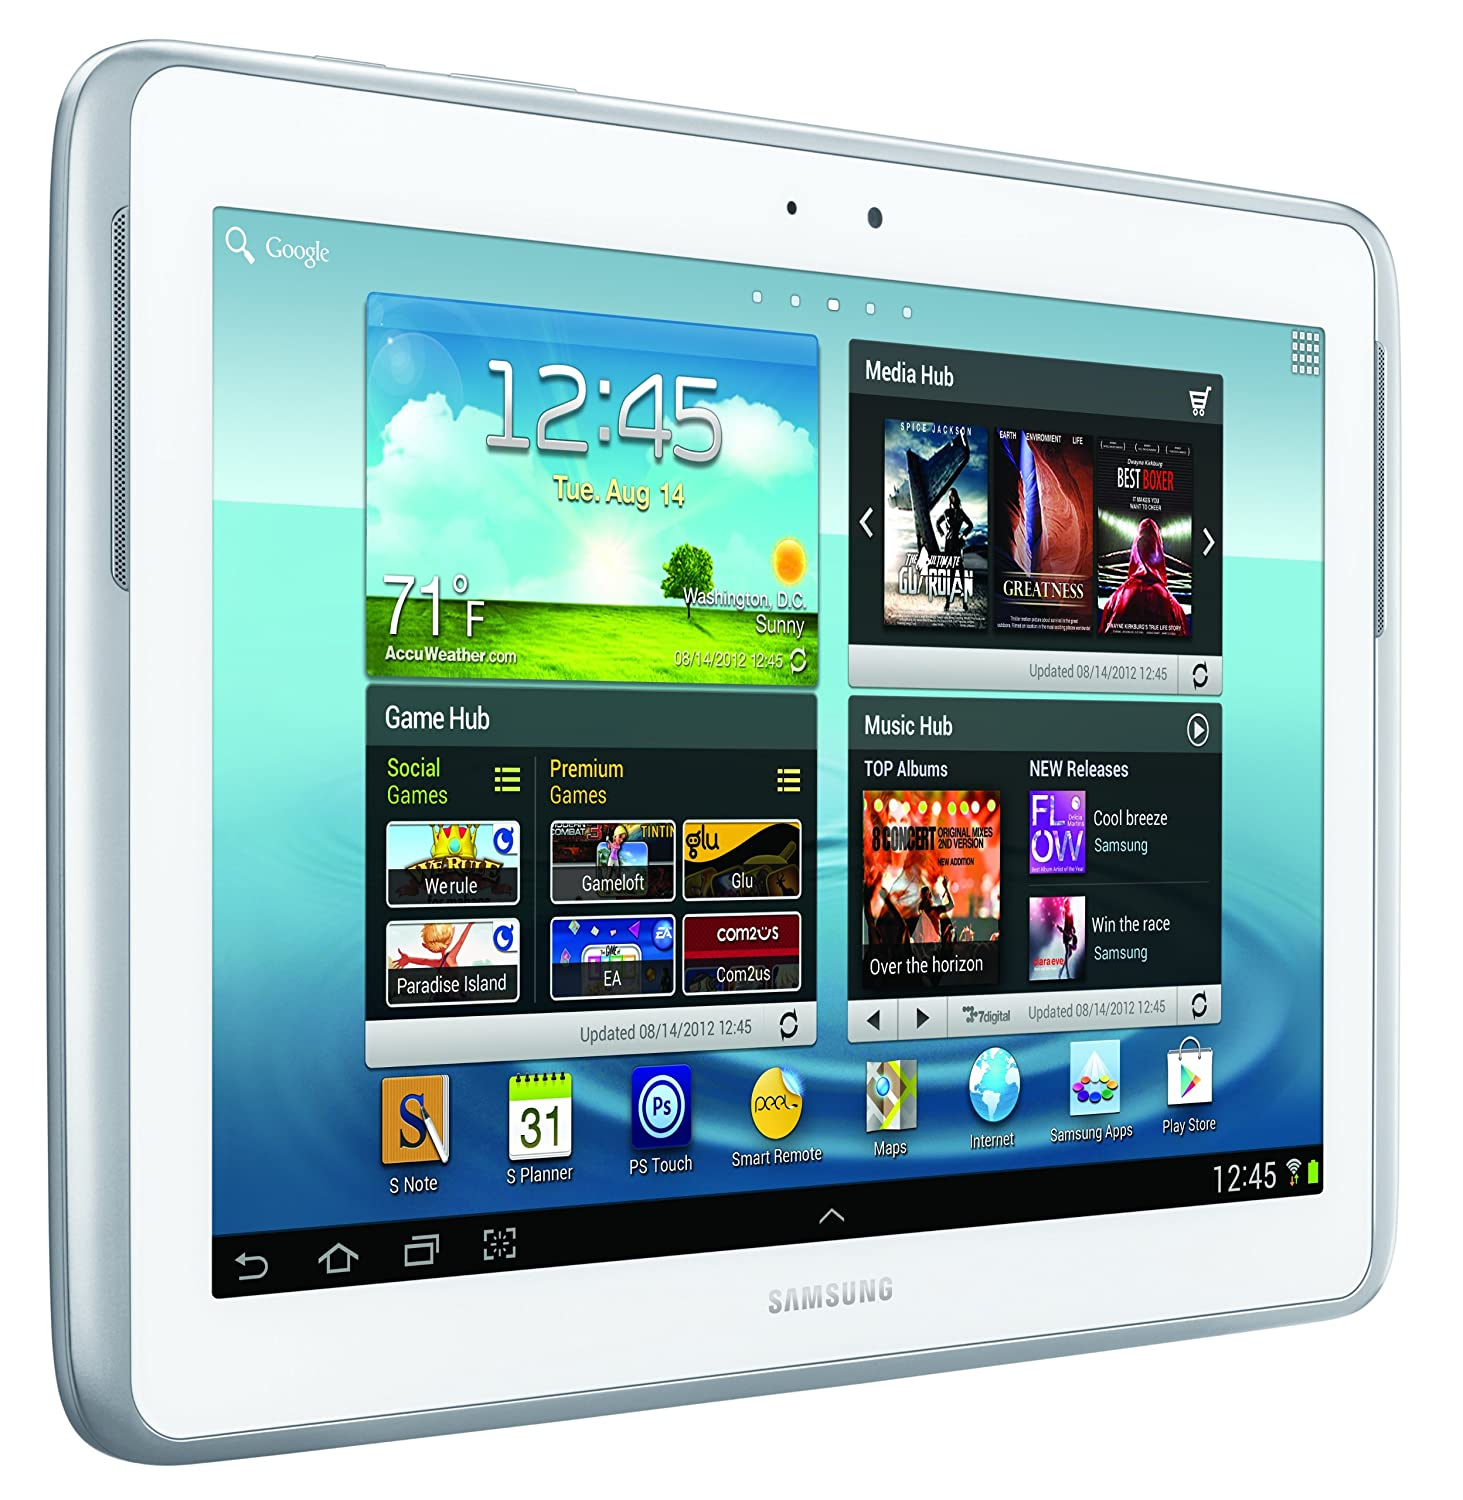 Amazon.com: Samsung Galaxy Note 10.1 batería ...